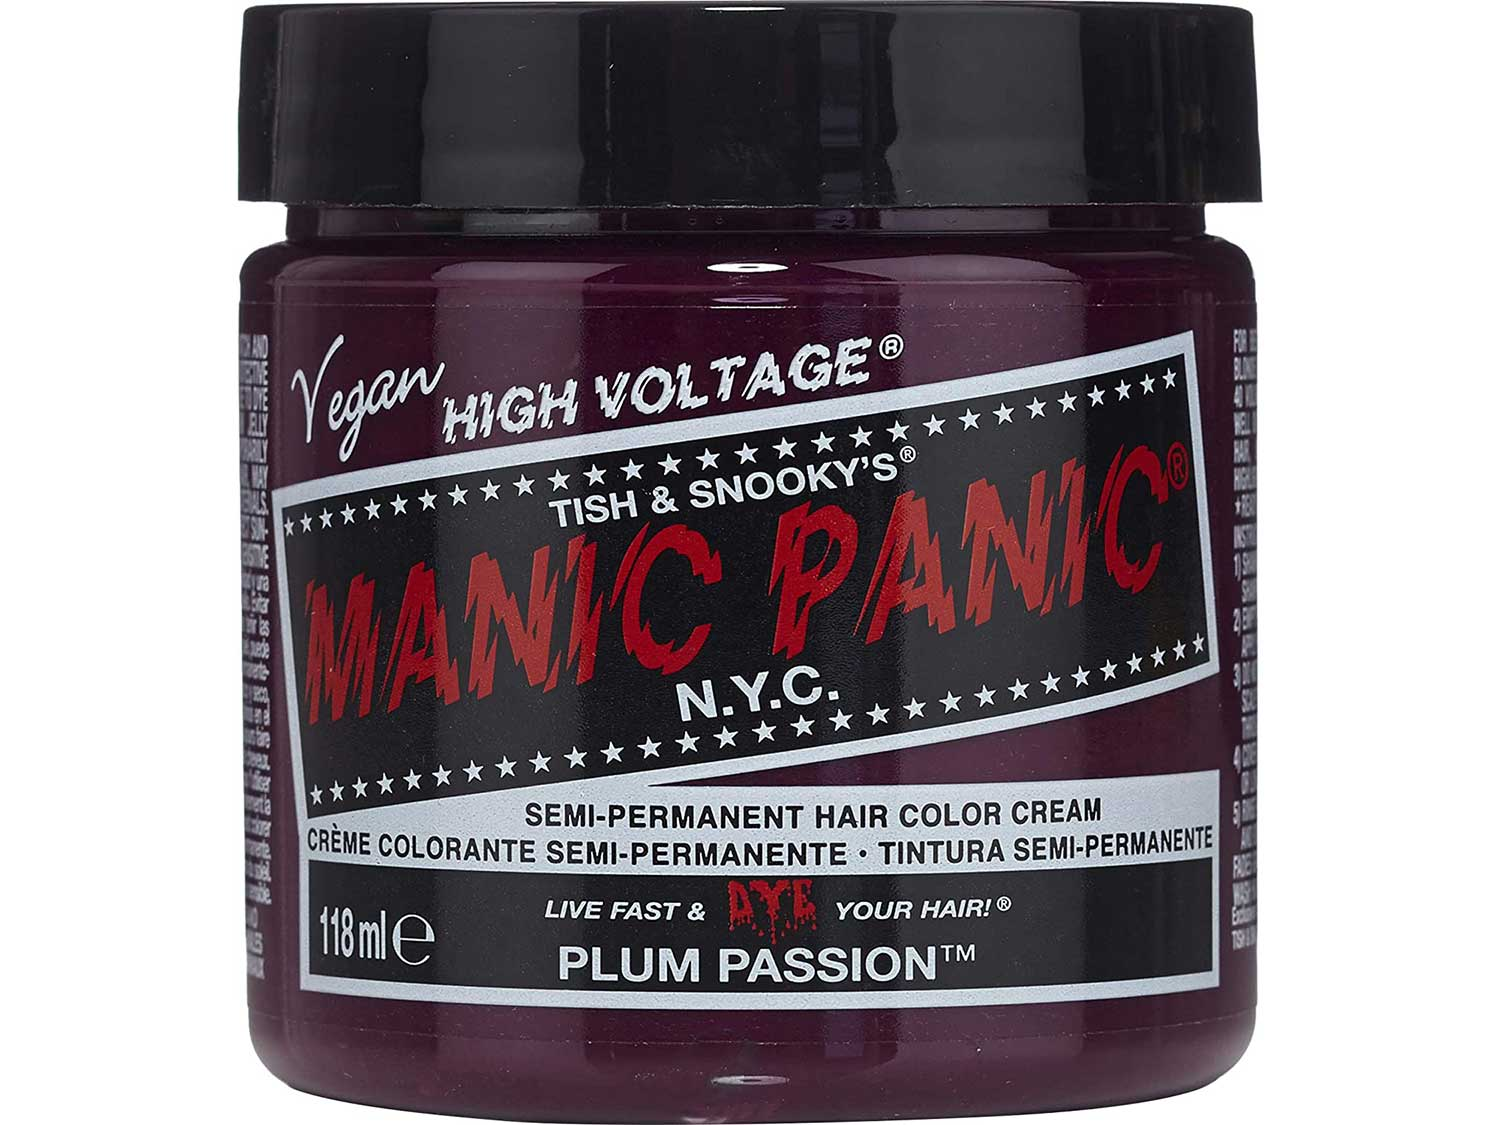 Manic Panic Plum Passion Hair Dye - Classic High Voltage - Semi Permanent Hair Color - Purple Shade With Red Undertones - For Dark & Light Hair – Vegan, PPD & Ammonia-Free - For Coloring Hair